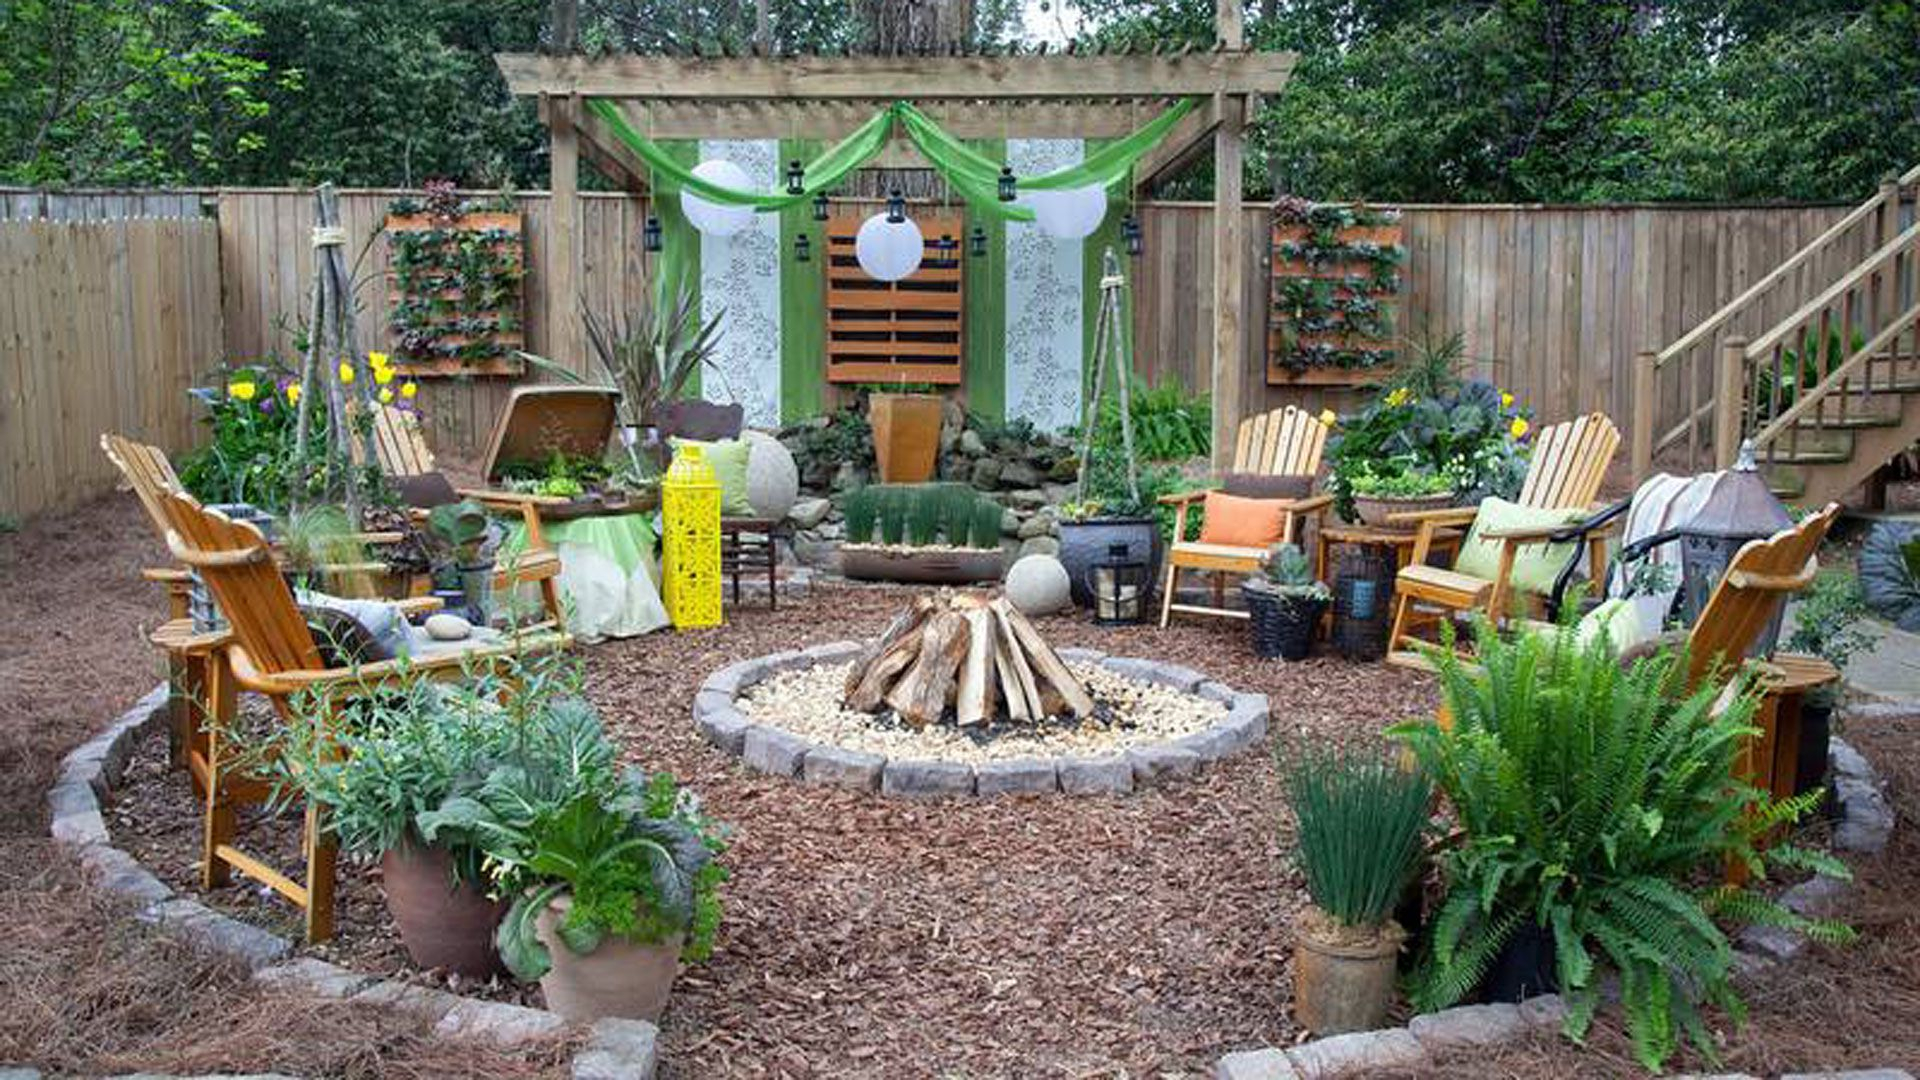 Backyard Oasis Beautiful Backyard Ideas with regard to 15 Clever Concepts of How to Make Backyard Oasis Ideas Pictures